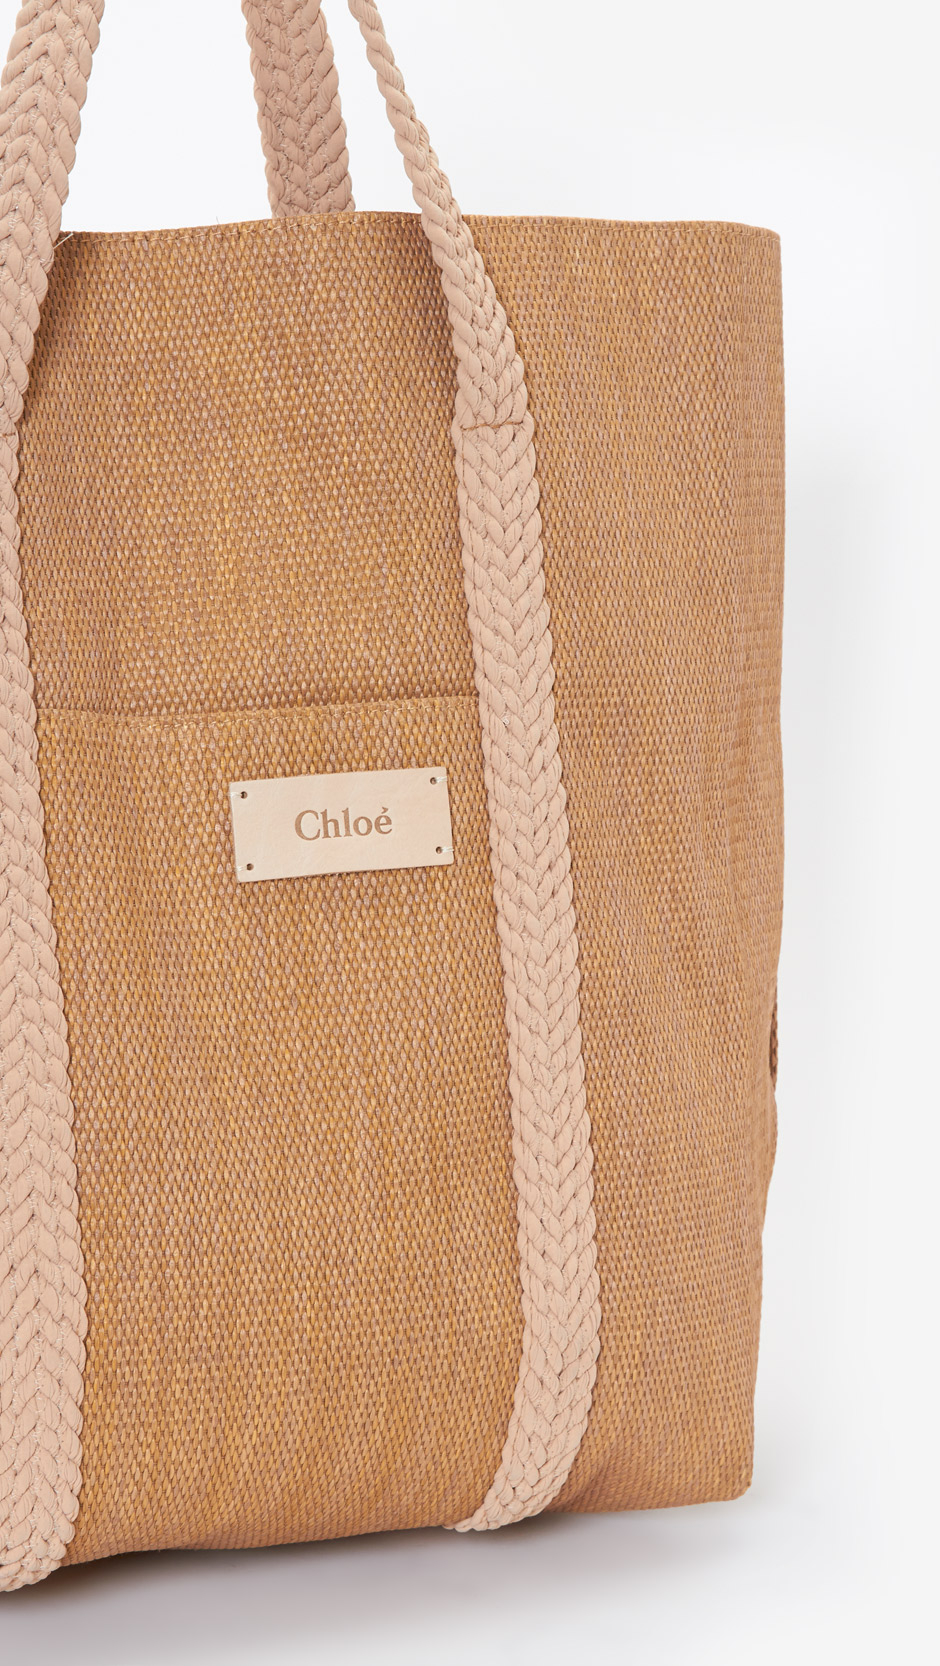 Chloé Beach Bag in Brown | Lyst